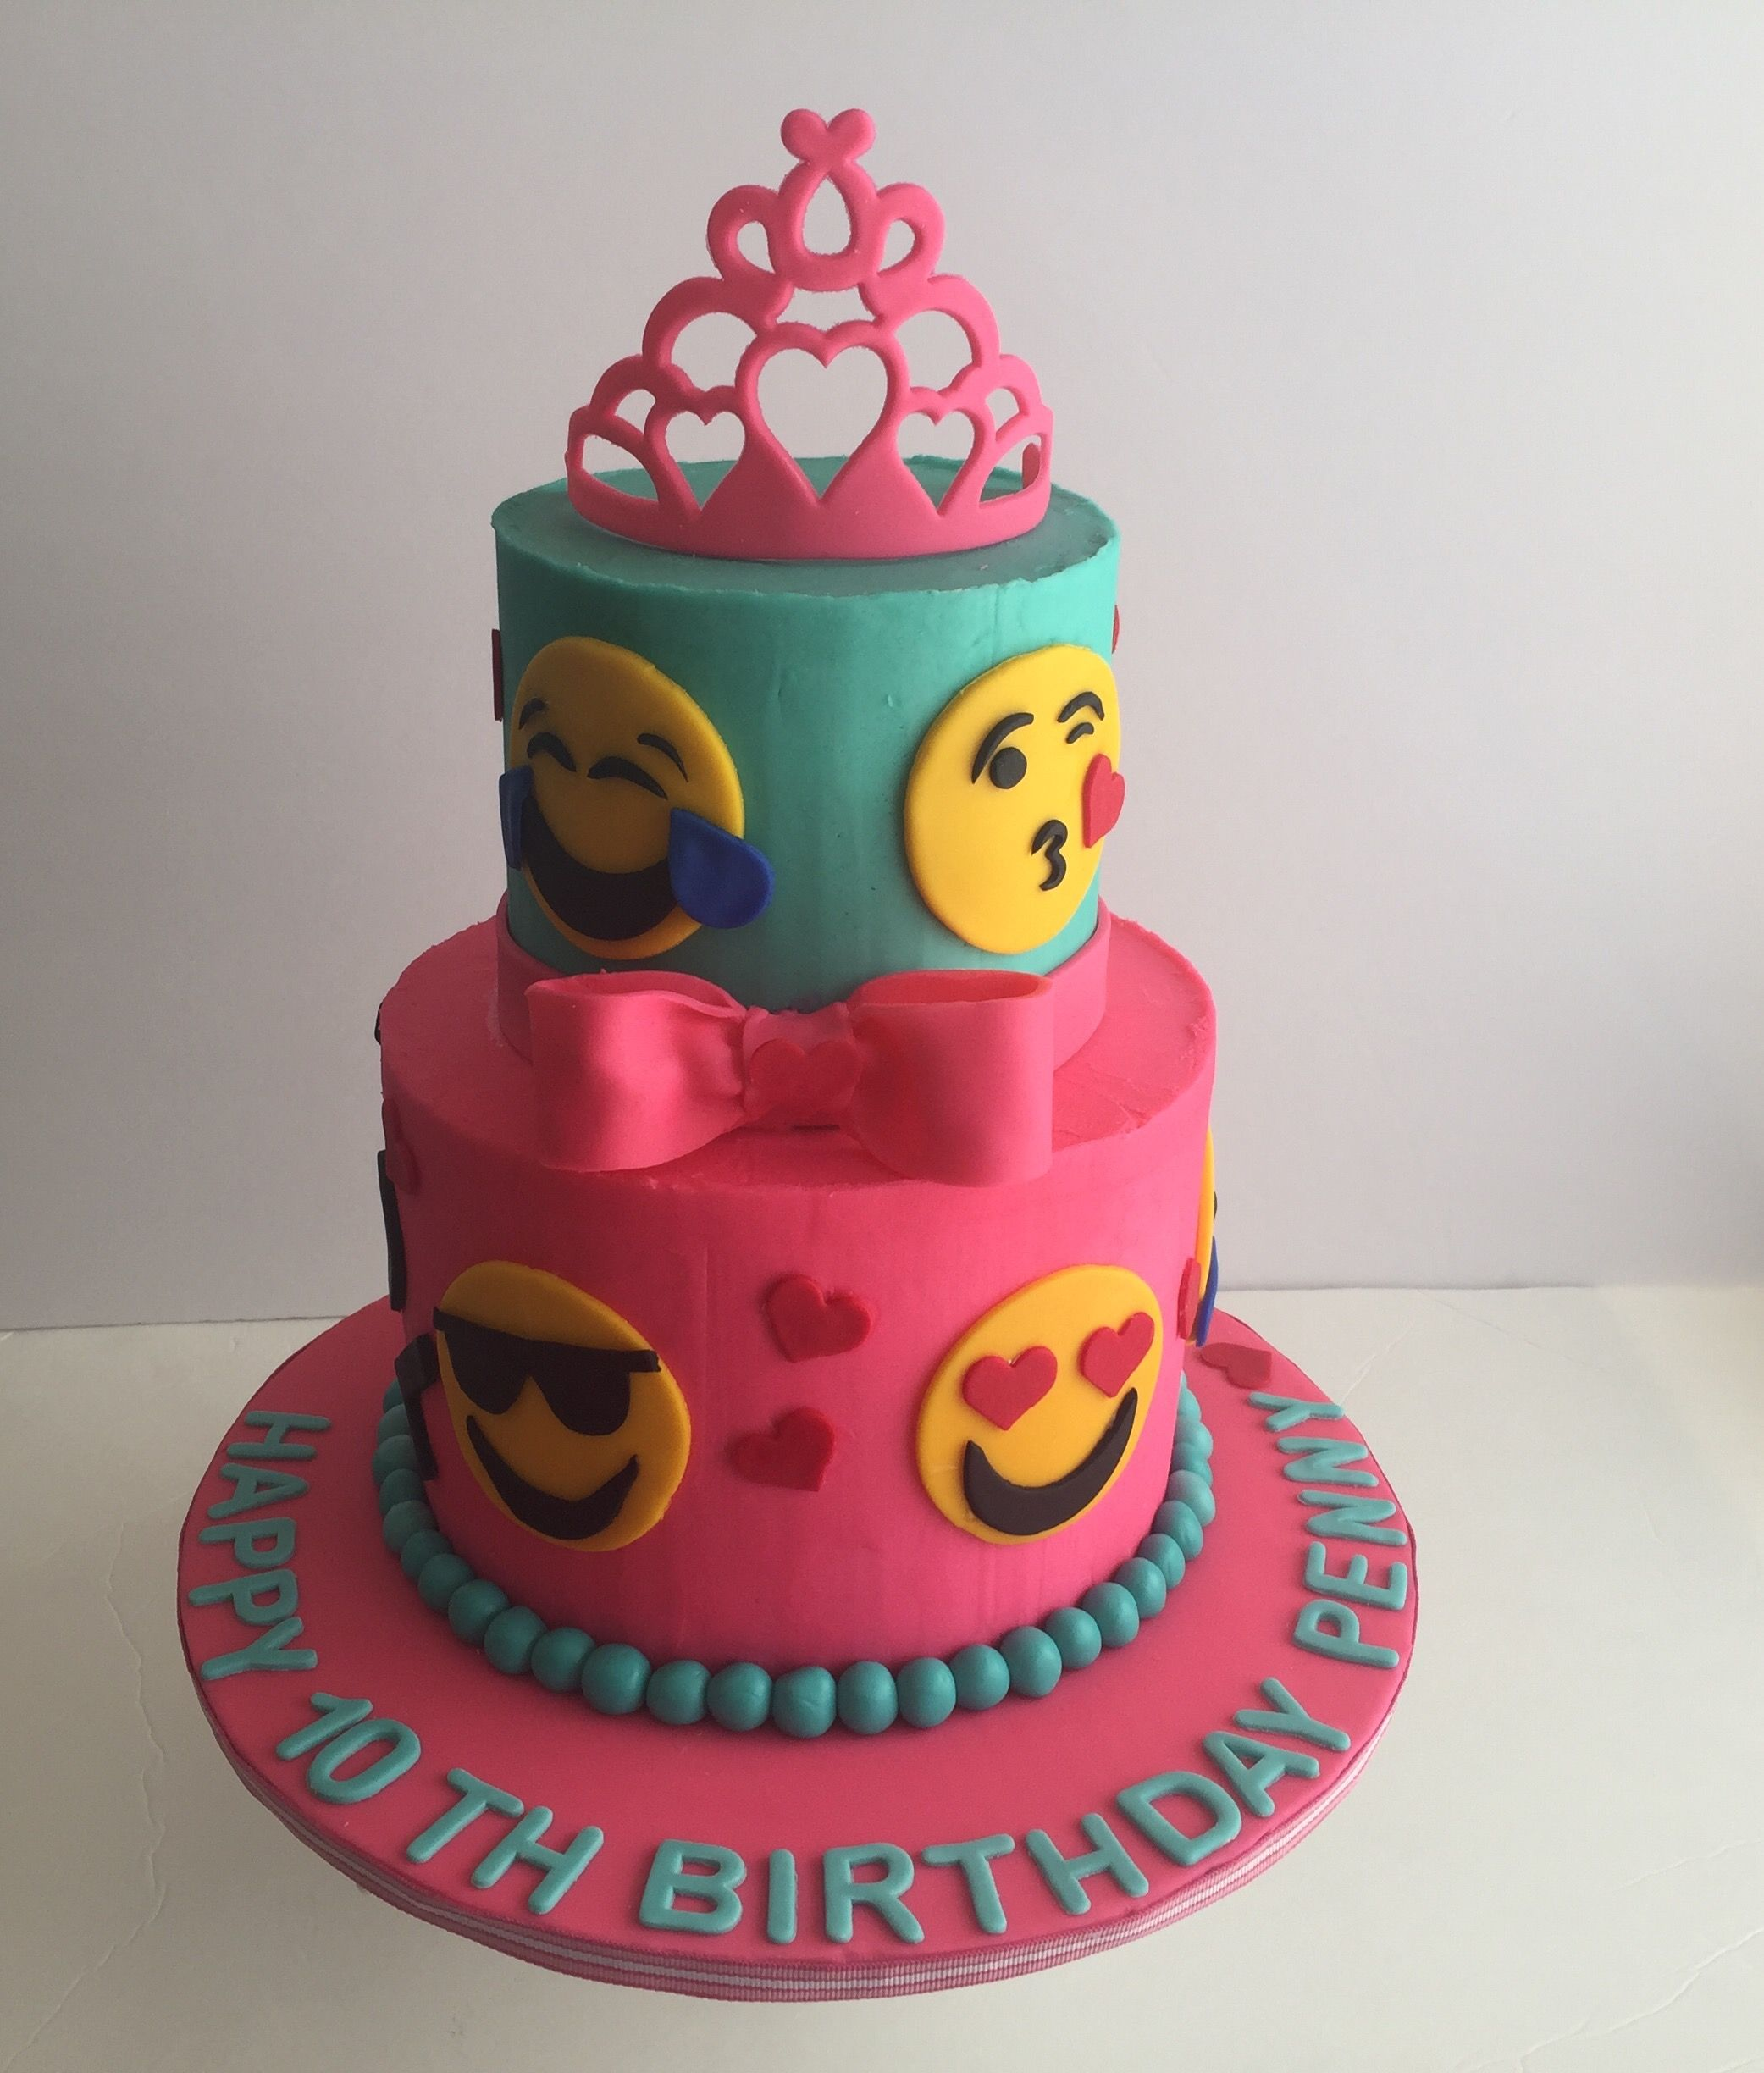 Birthday Cake Art Emoji Sweet Cakes And More Emojis